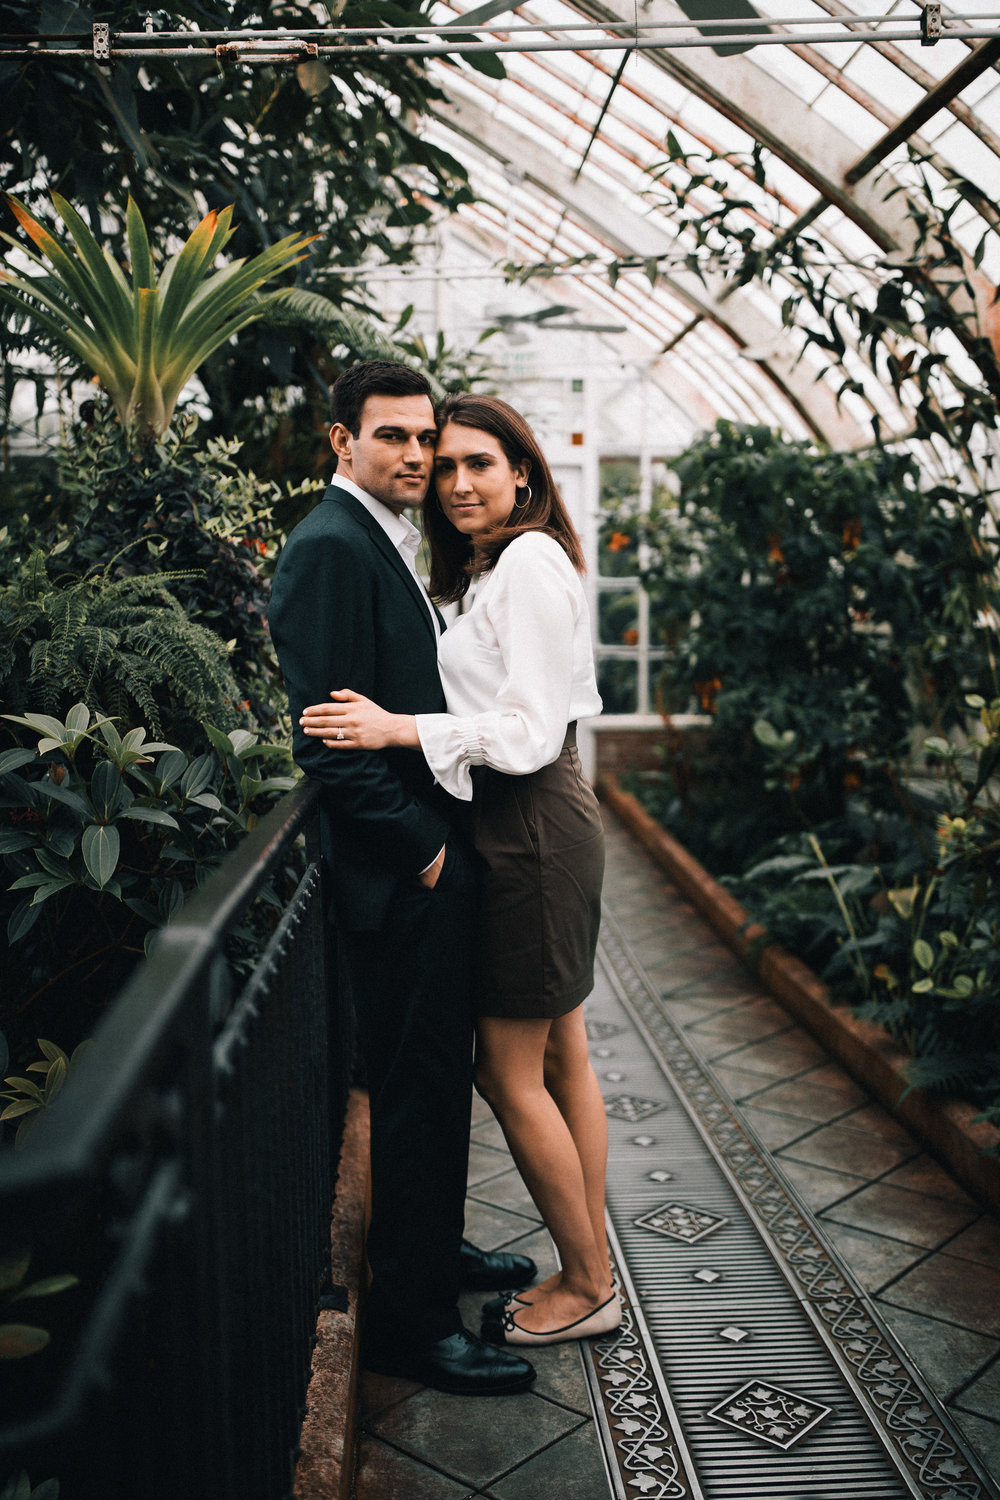 2019_04_ 072019.04.08 Ana and Richard Engagement Session Edited For Web 0023.jpg